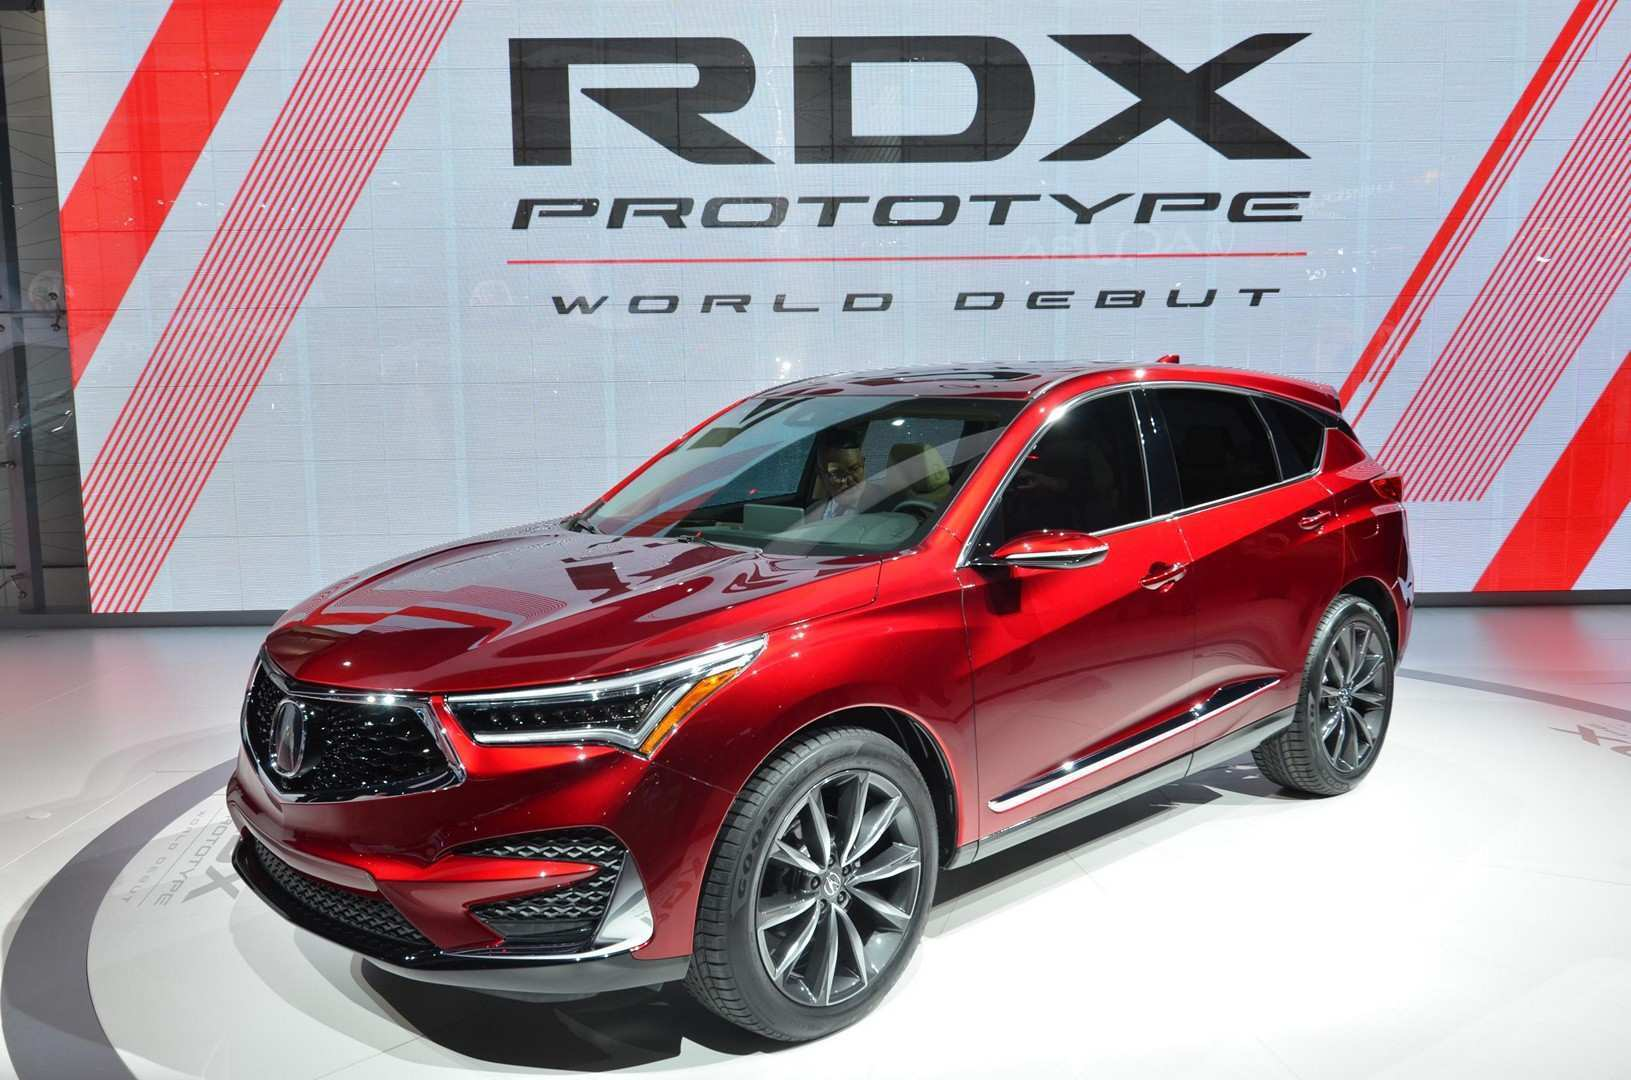 88 Best Review 2019 Acura Rdx Prototype Performance for 2019 Acura Rdx Prototype